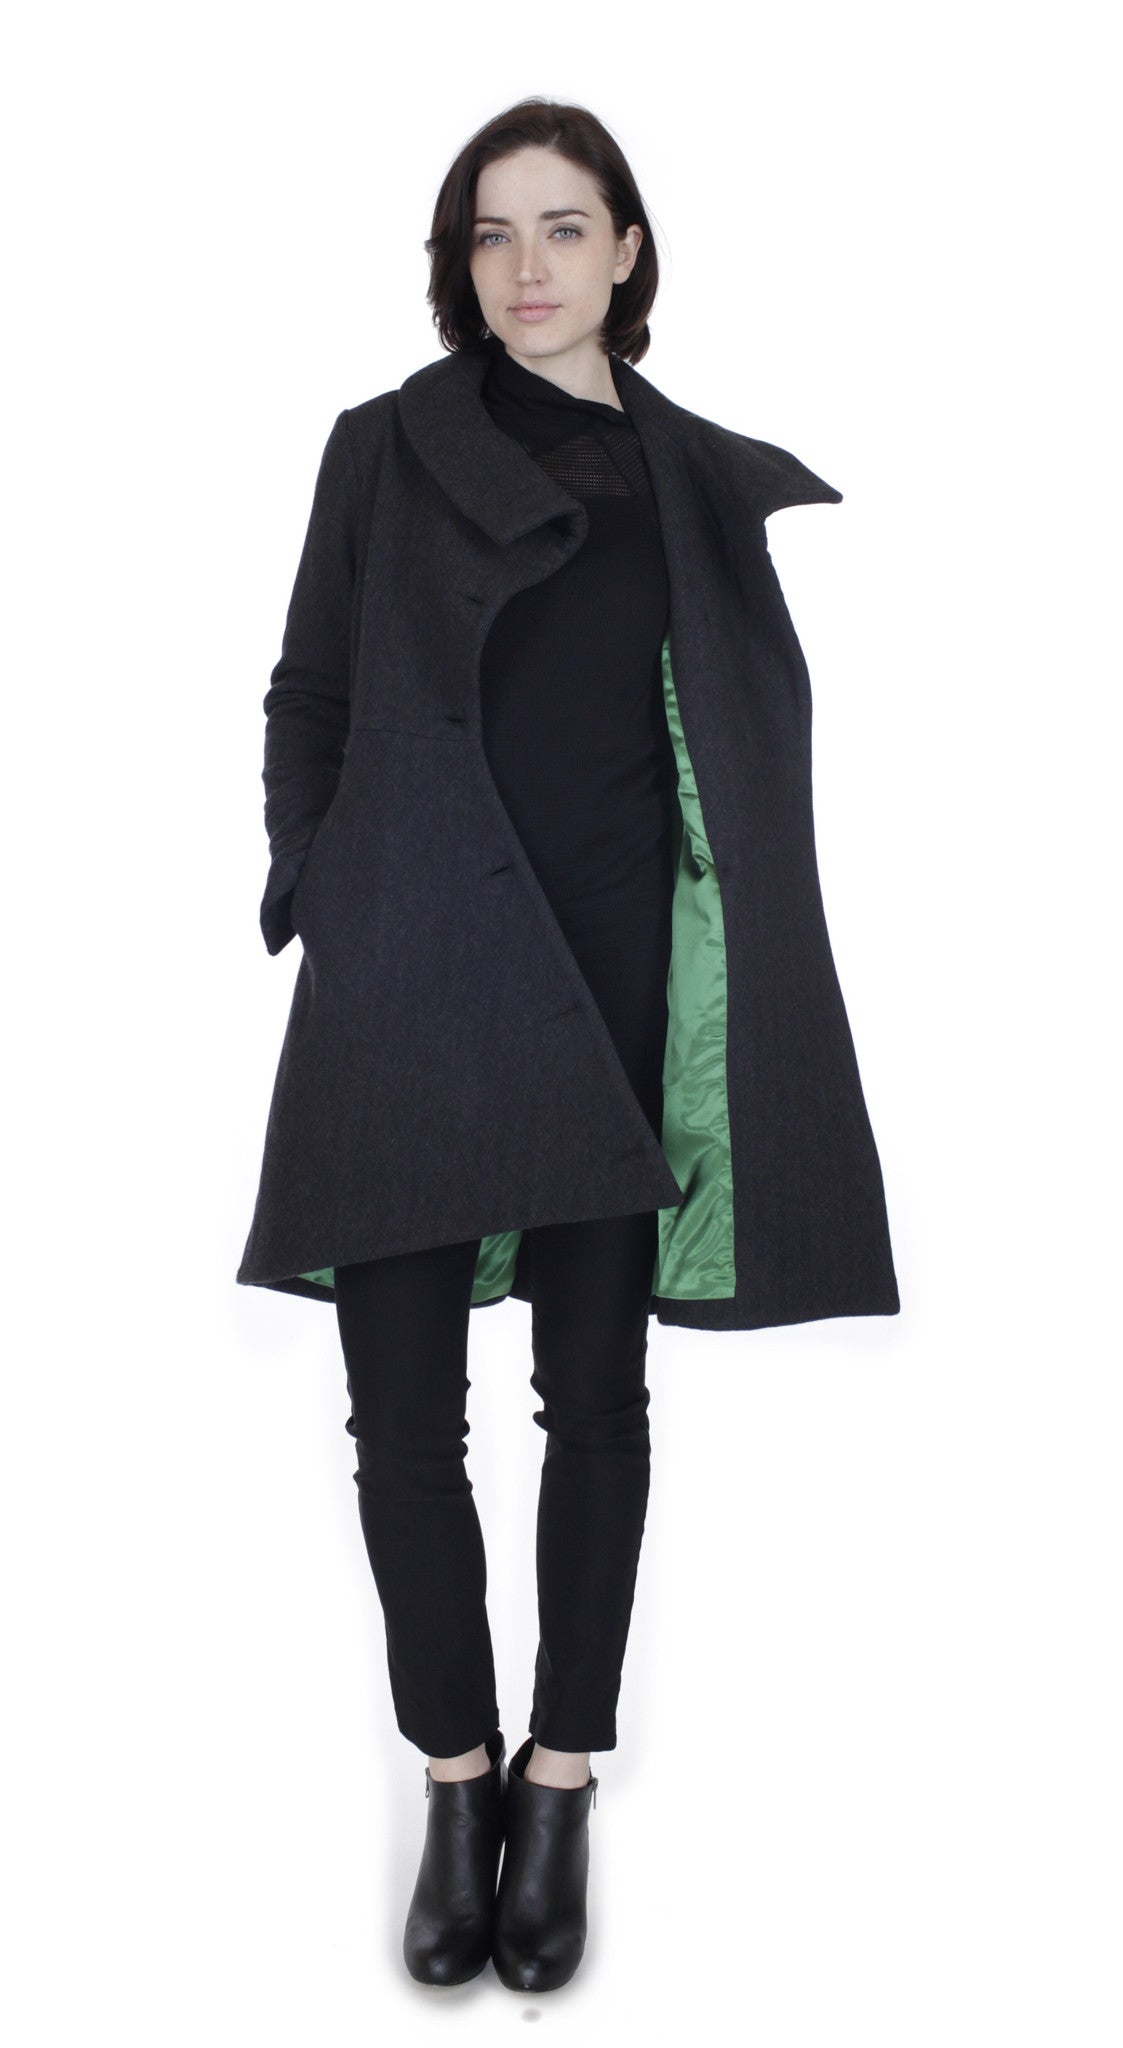 Swerve Coat /Wool/ Charcoal Herringbone